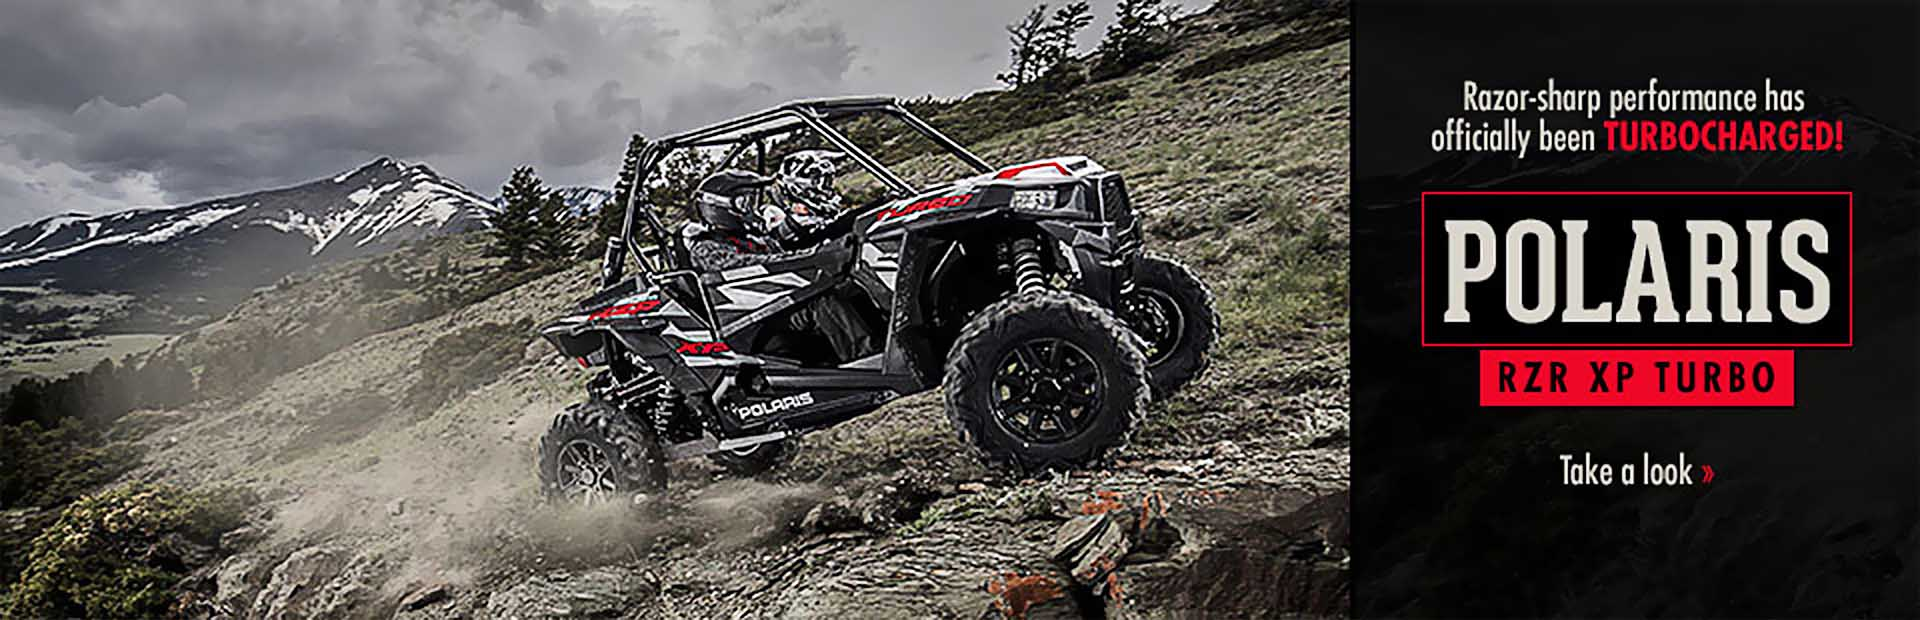 Polaris RZR XP Turbo: Click here for details!